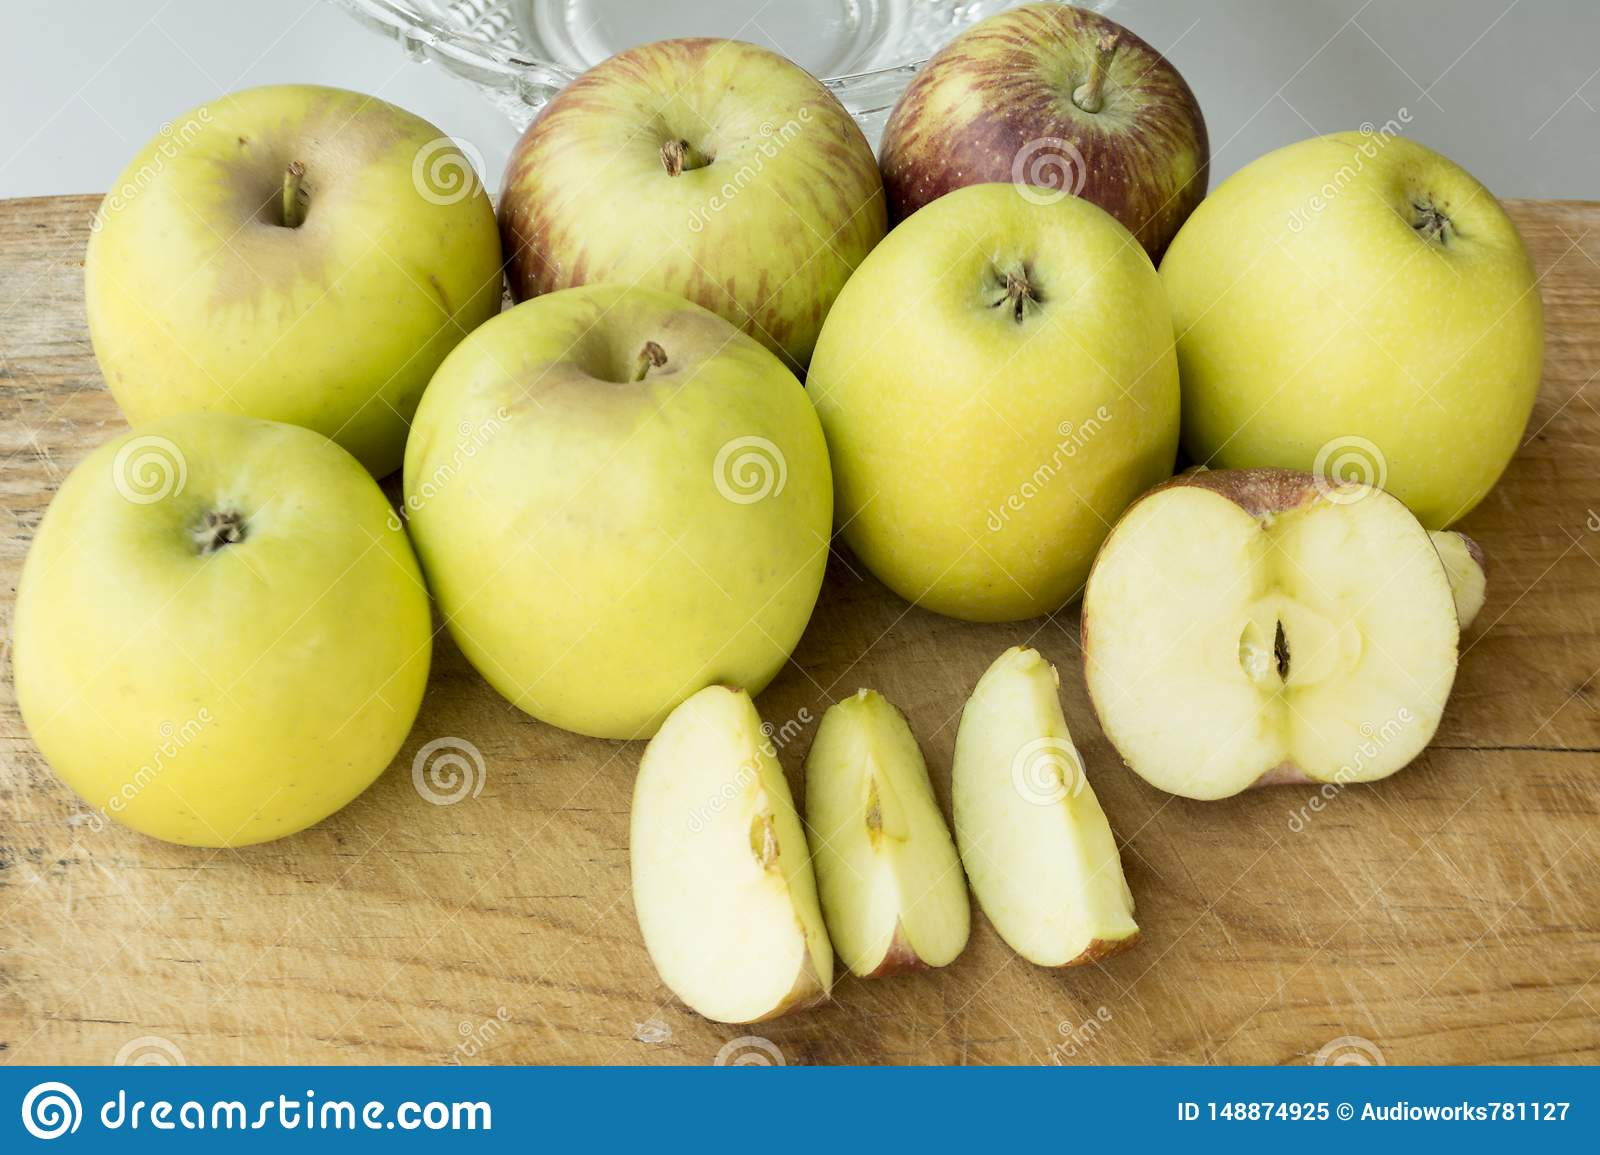 Fruit with a high energy content and dietary fiber